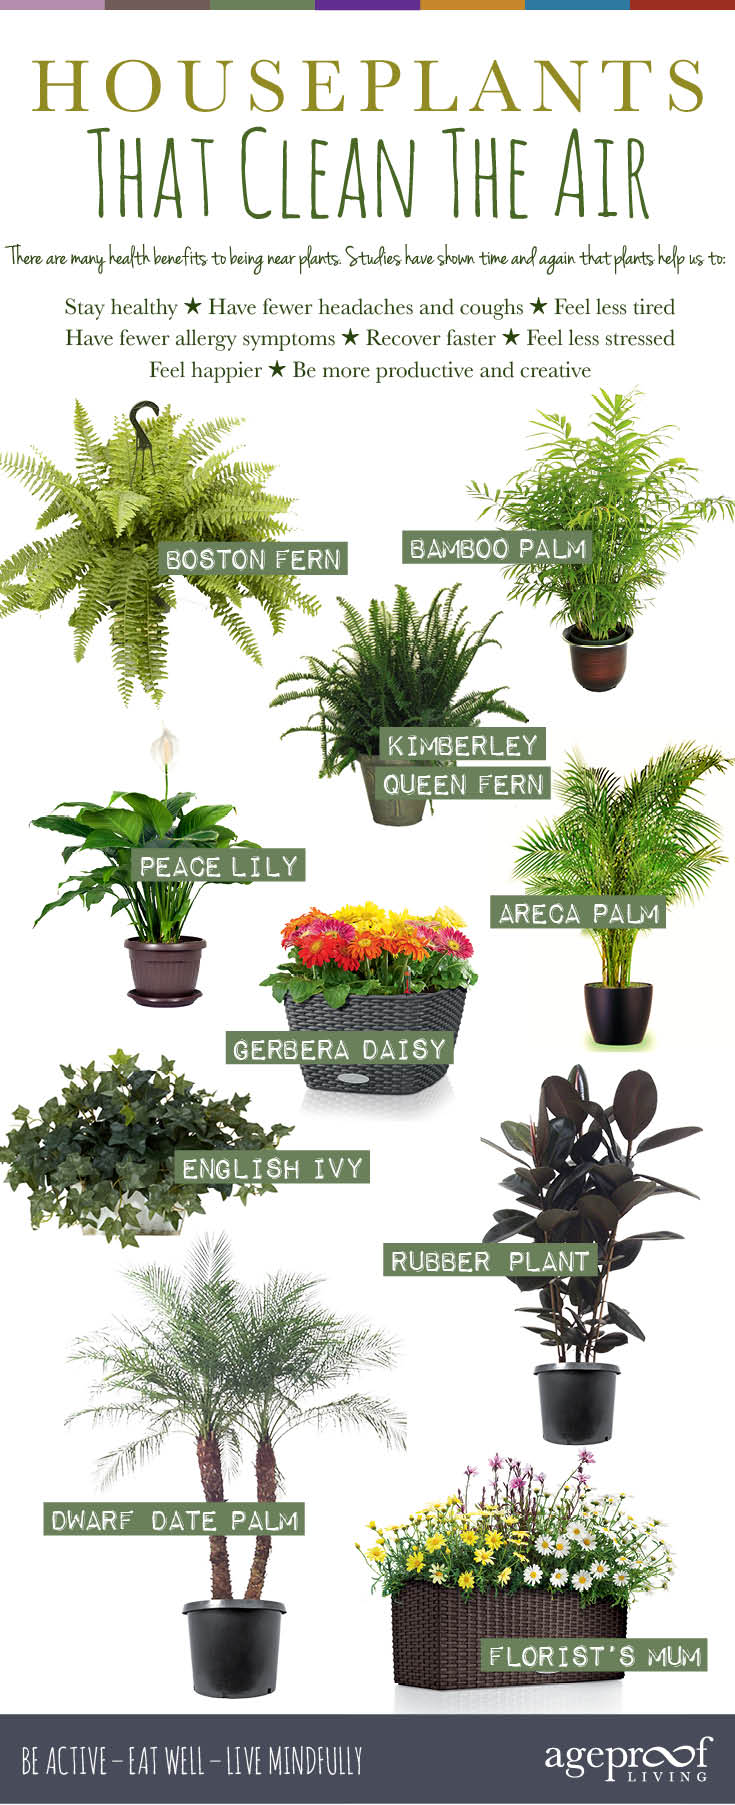 Houseplants That Clean The Air Infographic